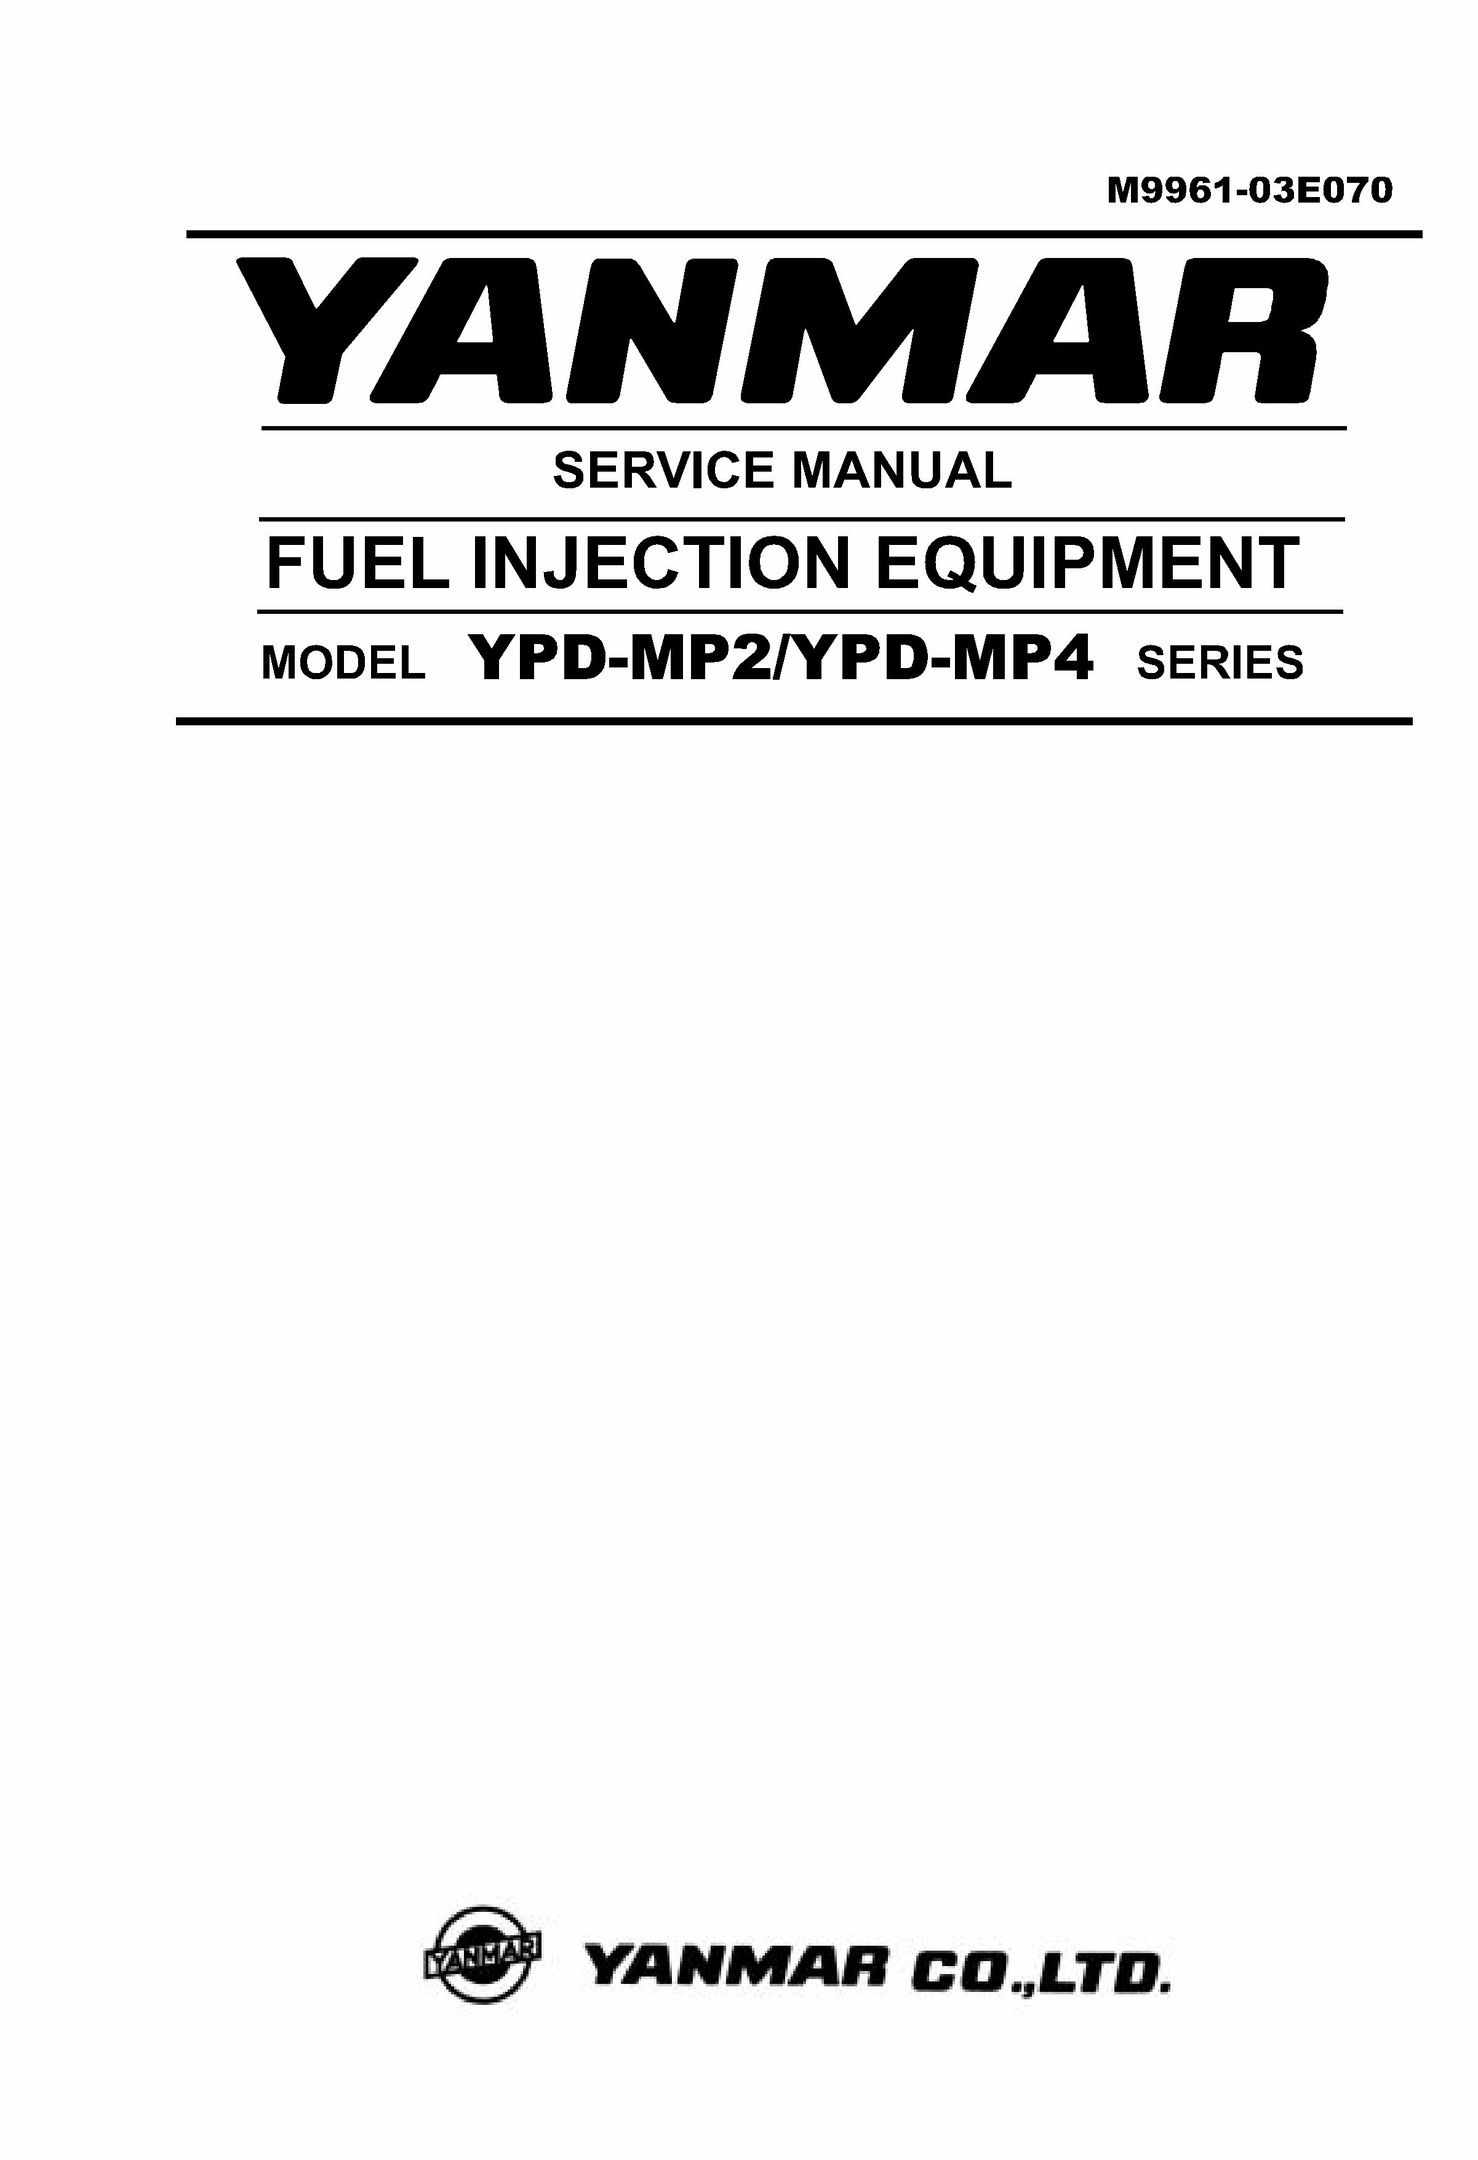 Pdf download john deere 644h 644h mh wheel loader operation and pdf download john deere 644h 644h mh wheel loader operation and test manual download tm1634 download heavy equipment service repair manuals pinterest fandeluxe